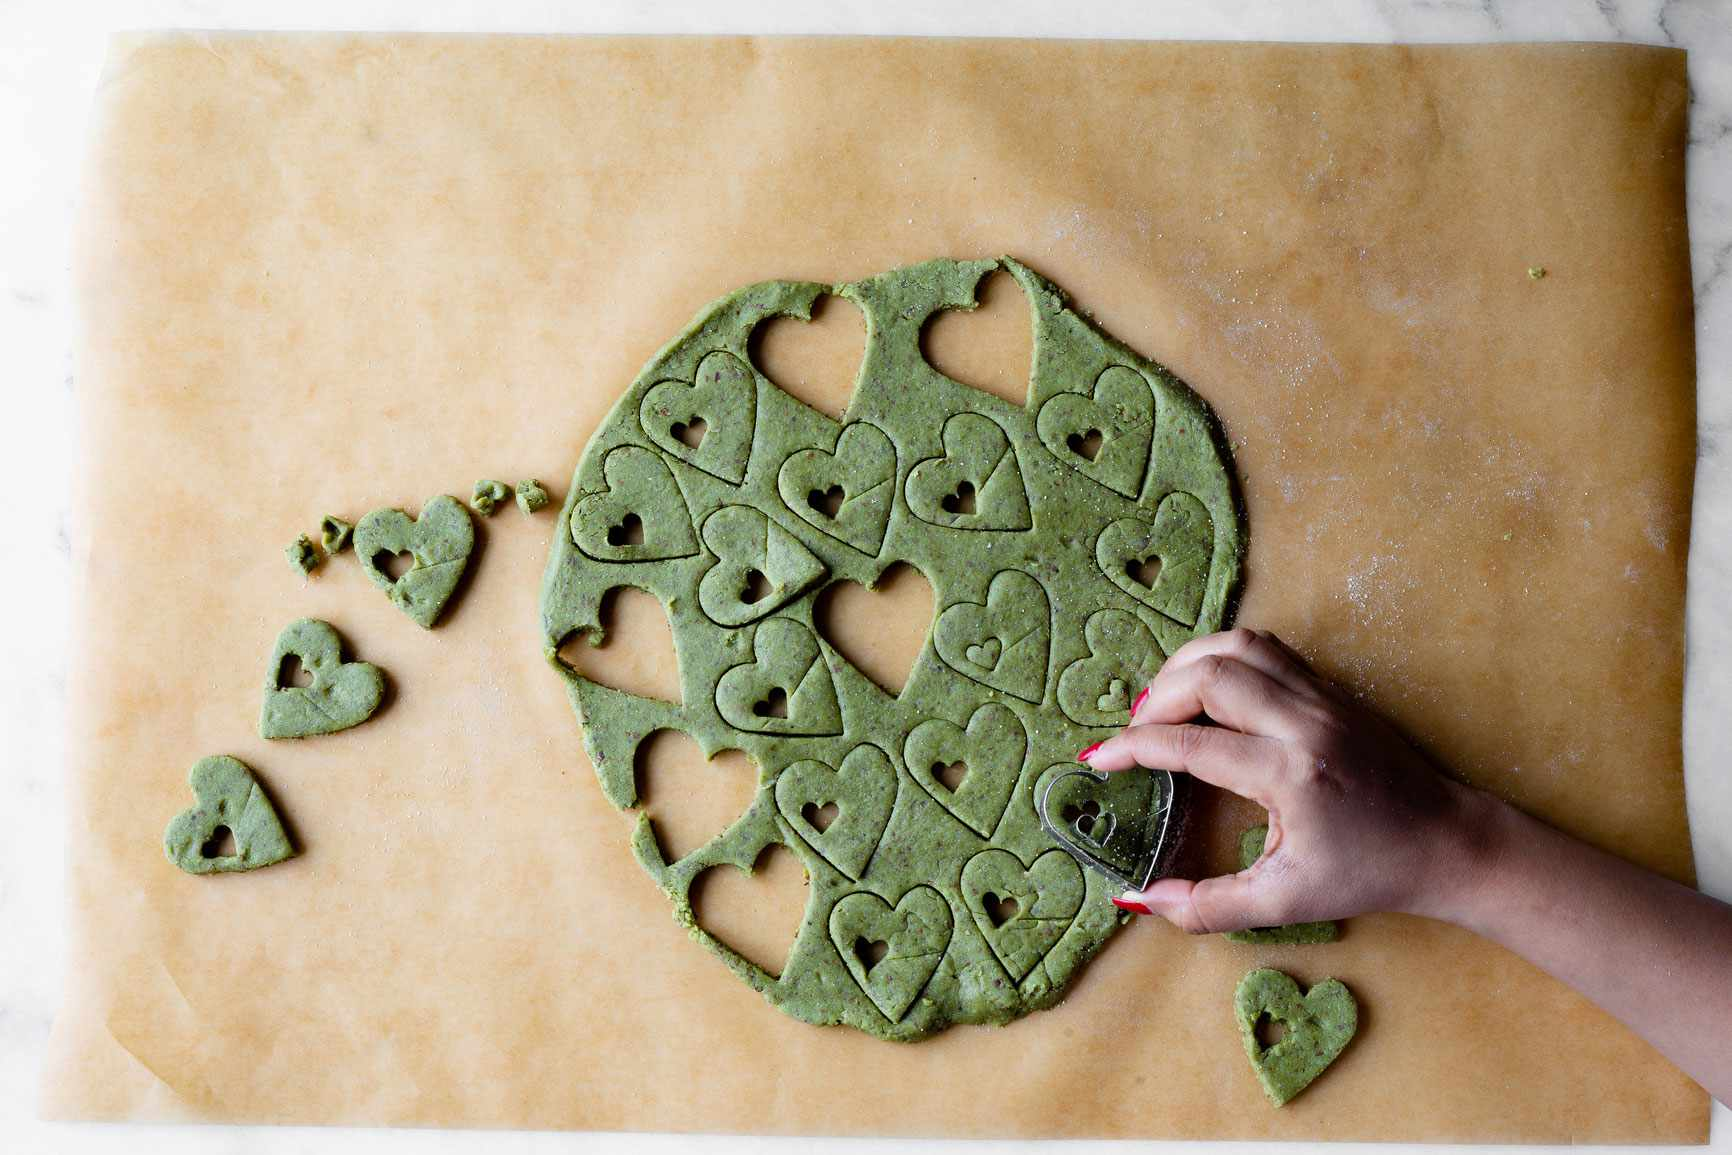 Cutting out cookies in green matcha dough